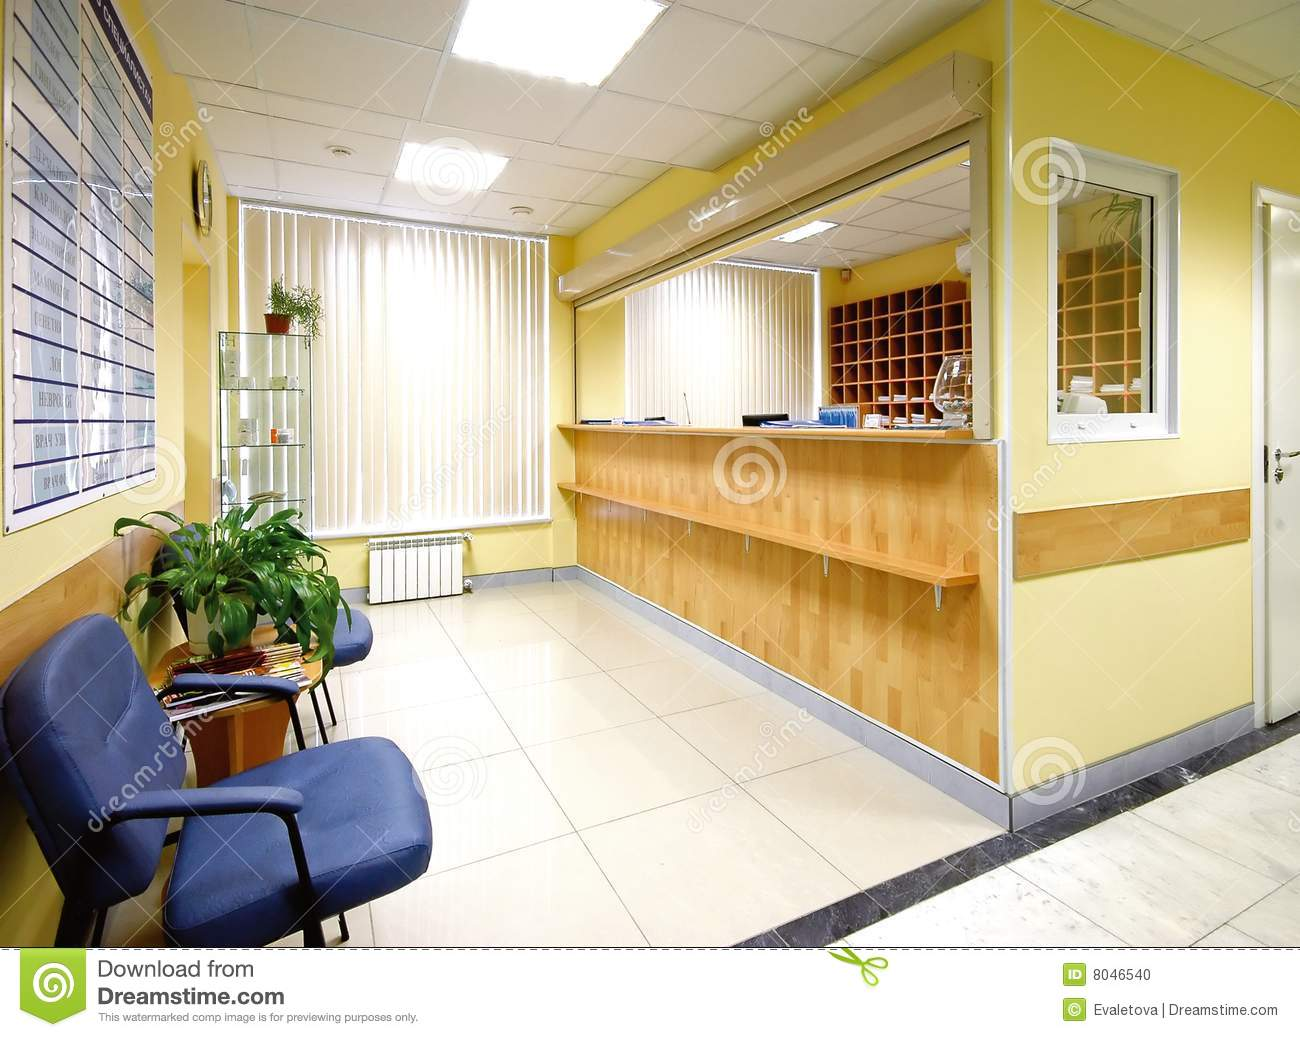 Reception In Hospital Stock Photo - Image: 8046540